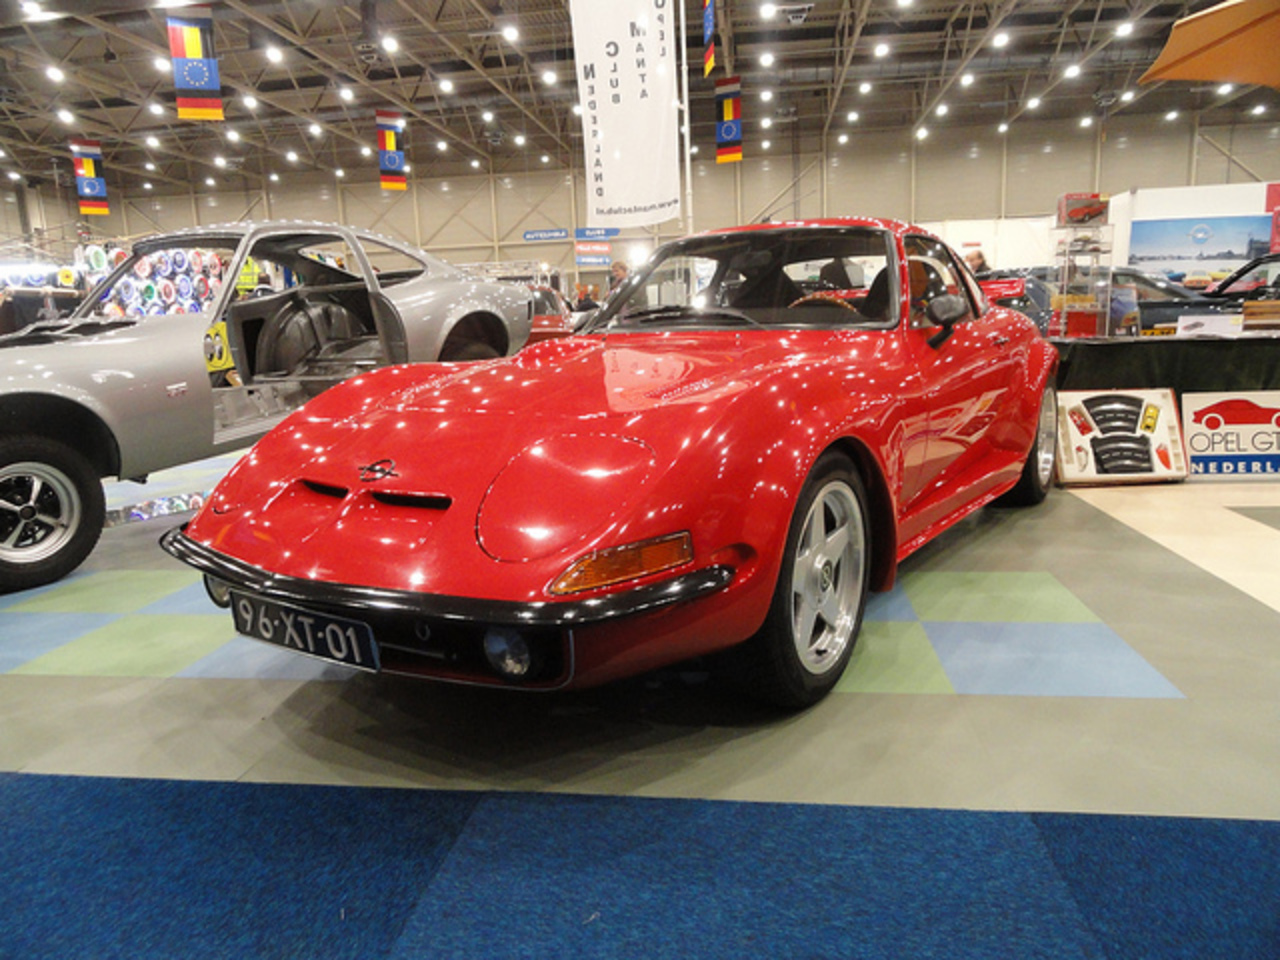 1970 Opel GT 1900 | Flickr - Photo Sharing!